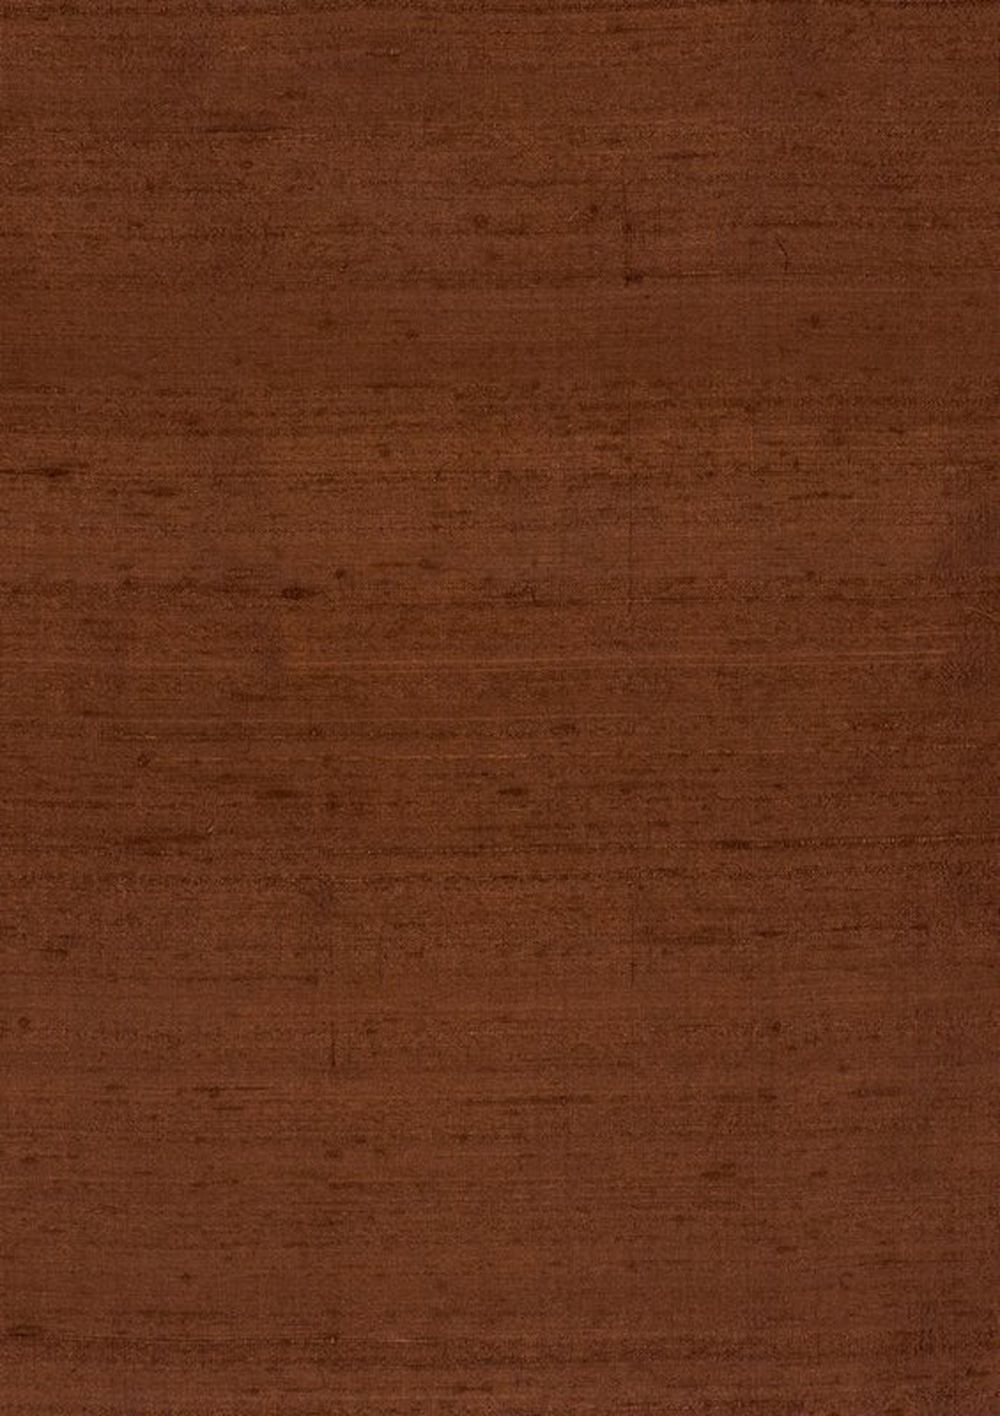 Photo of the fabric Indulgence Mahogany-186 swatch by Zepel. Use for Curtains. Style of Plain